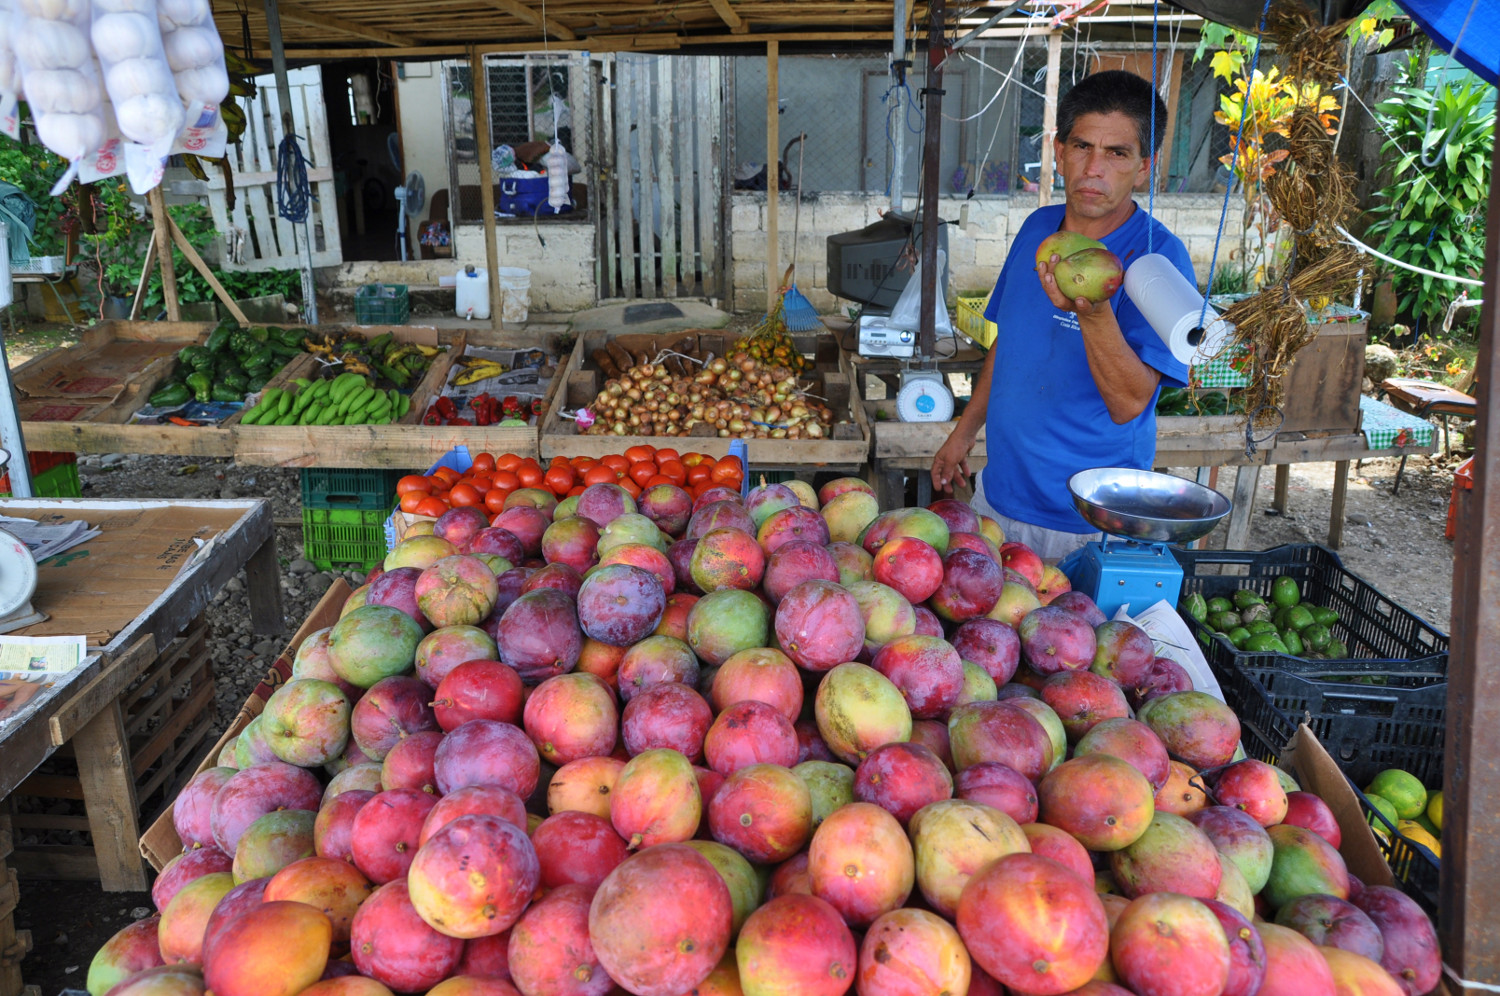 Mango-Vitamintankstelle am Straßenrand | Mangoes - top up on vitamins by the roadside